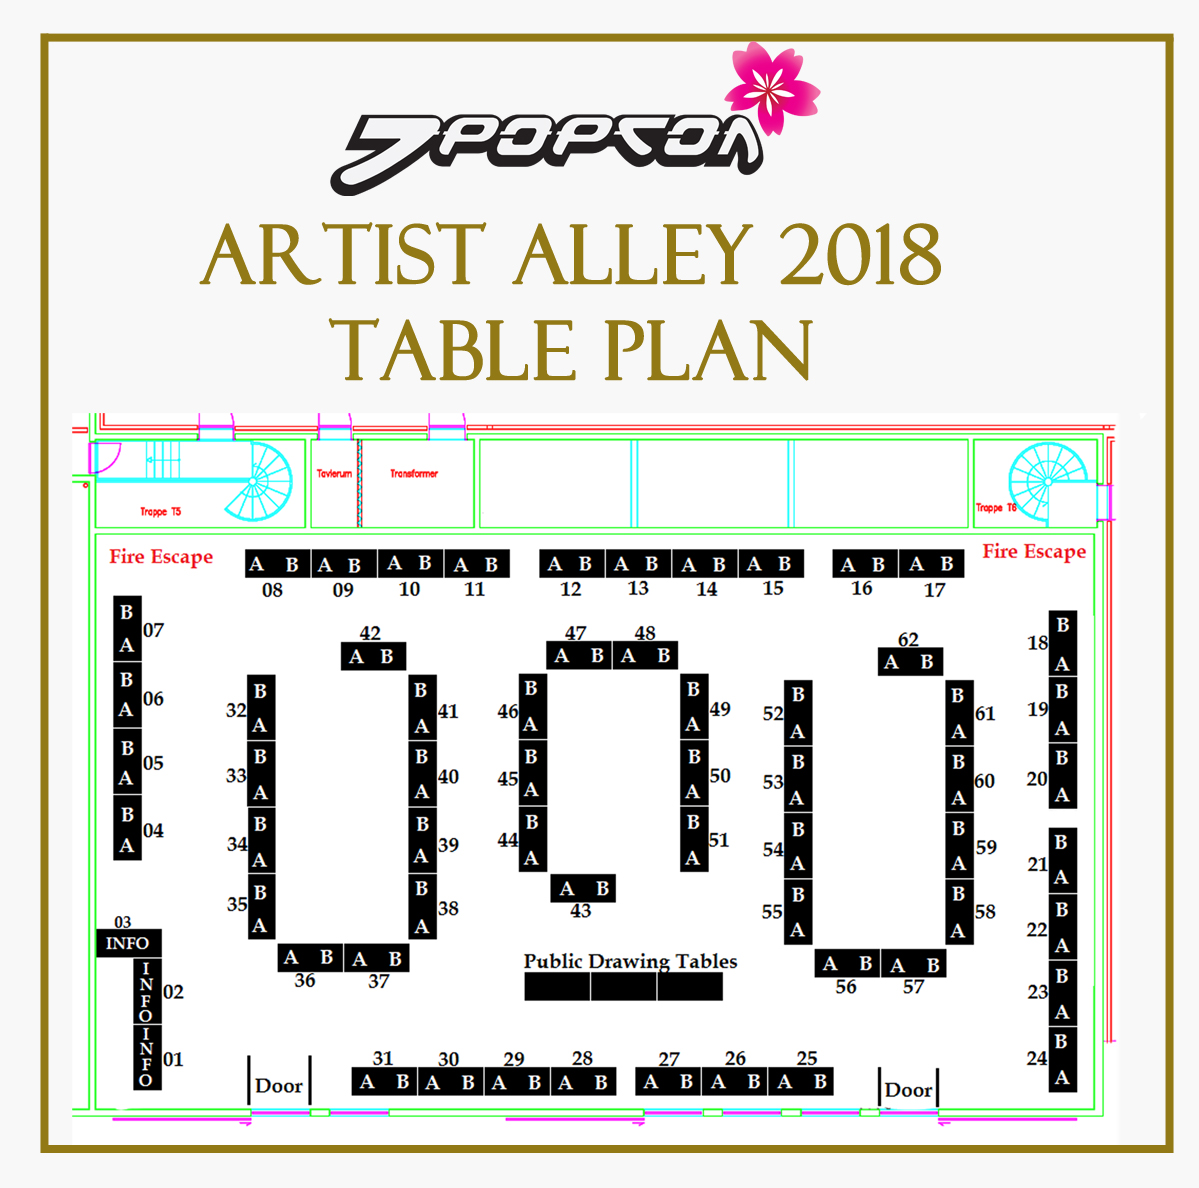 Artist Alley 2018 Table Plan